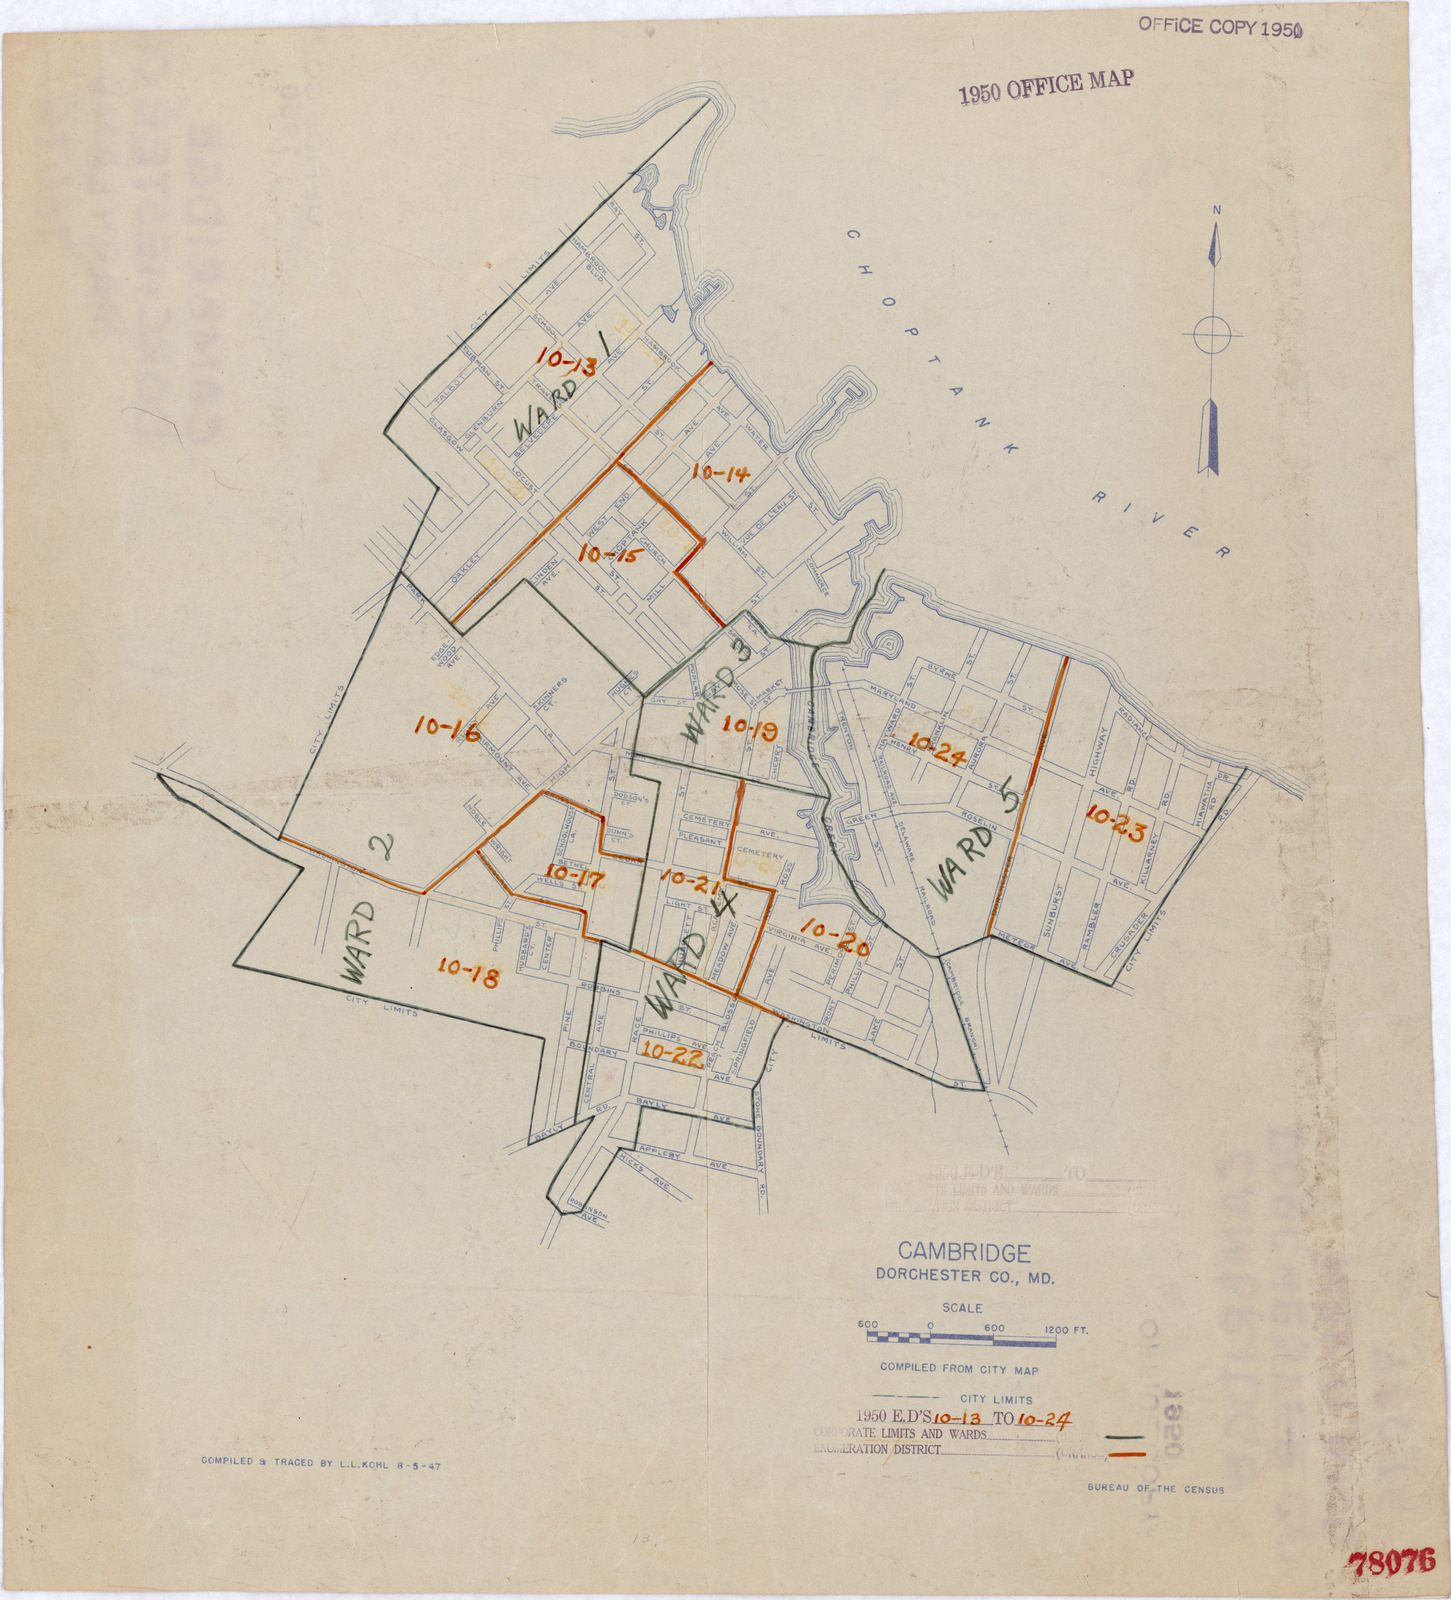 1950 Census Enumeration District Maps - Maryland (MD) - Dorchester County - Cambridge - ED 10-13 to 24